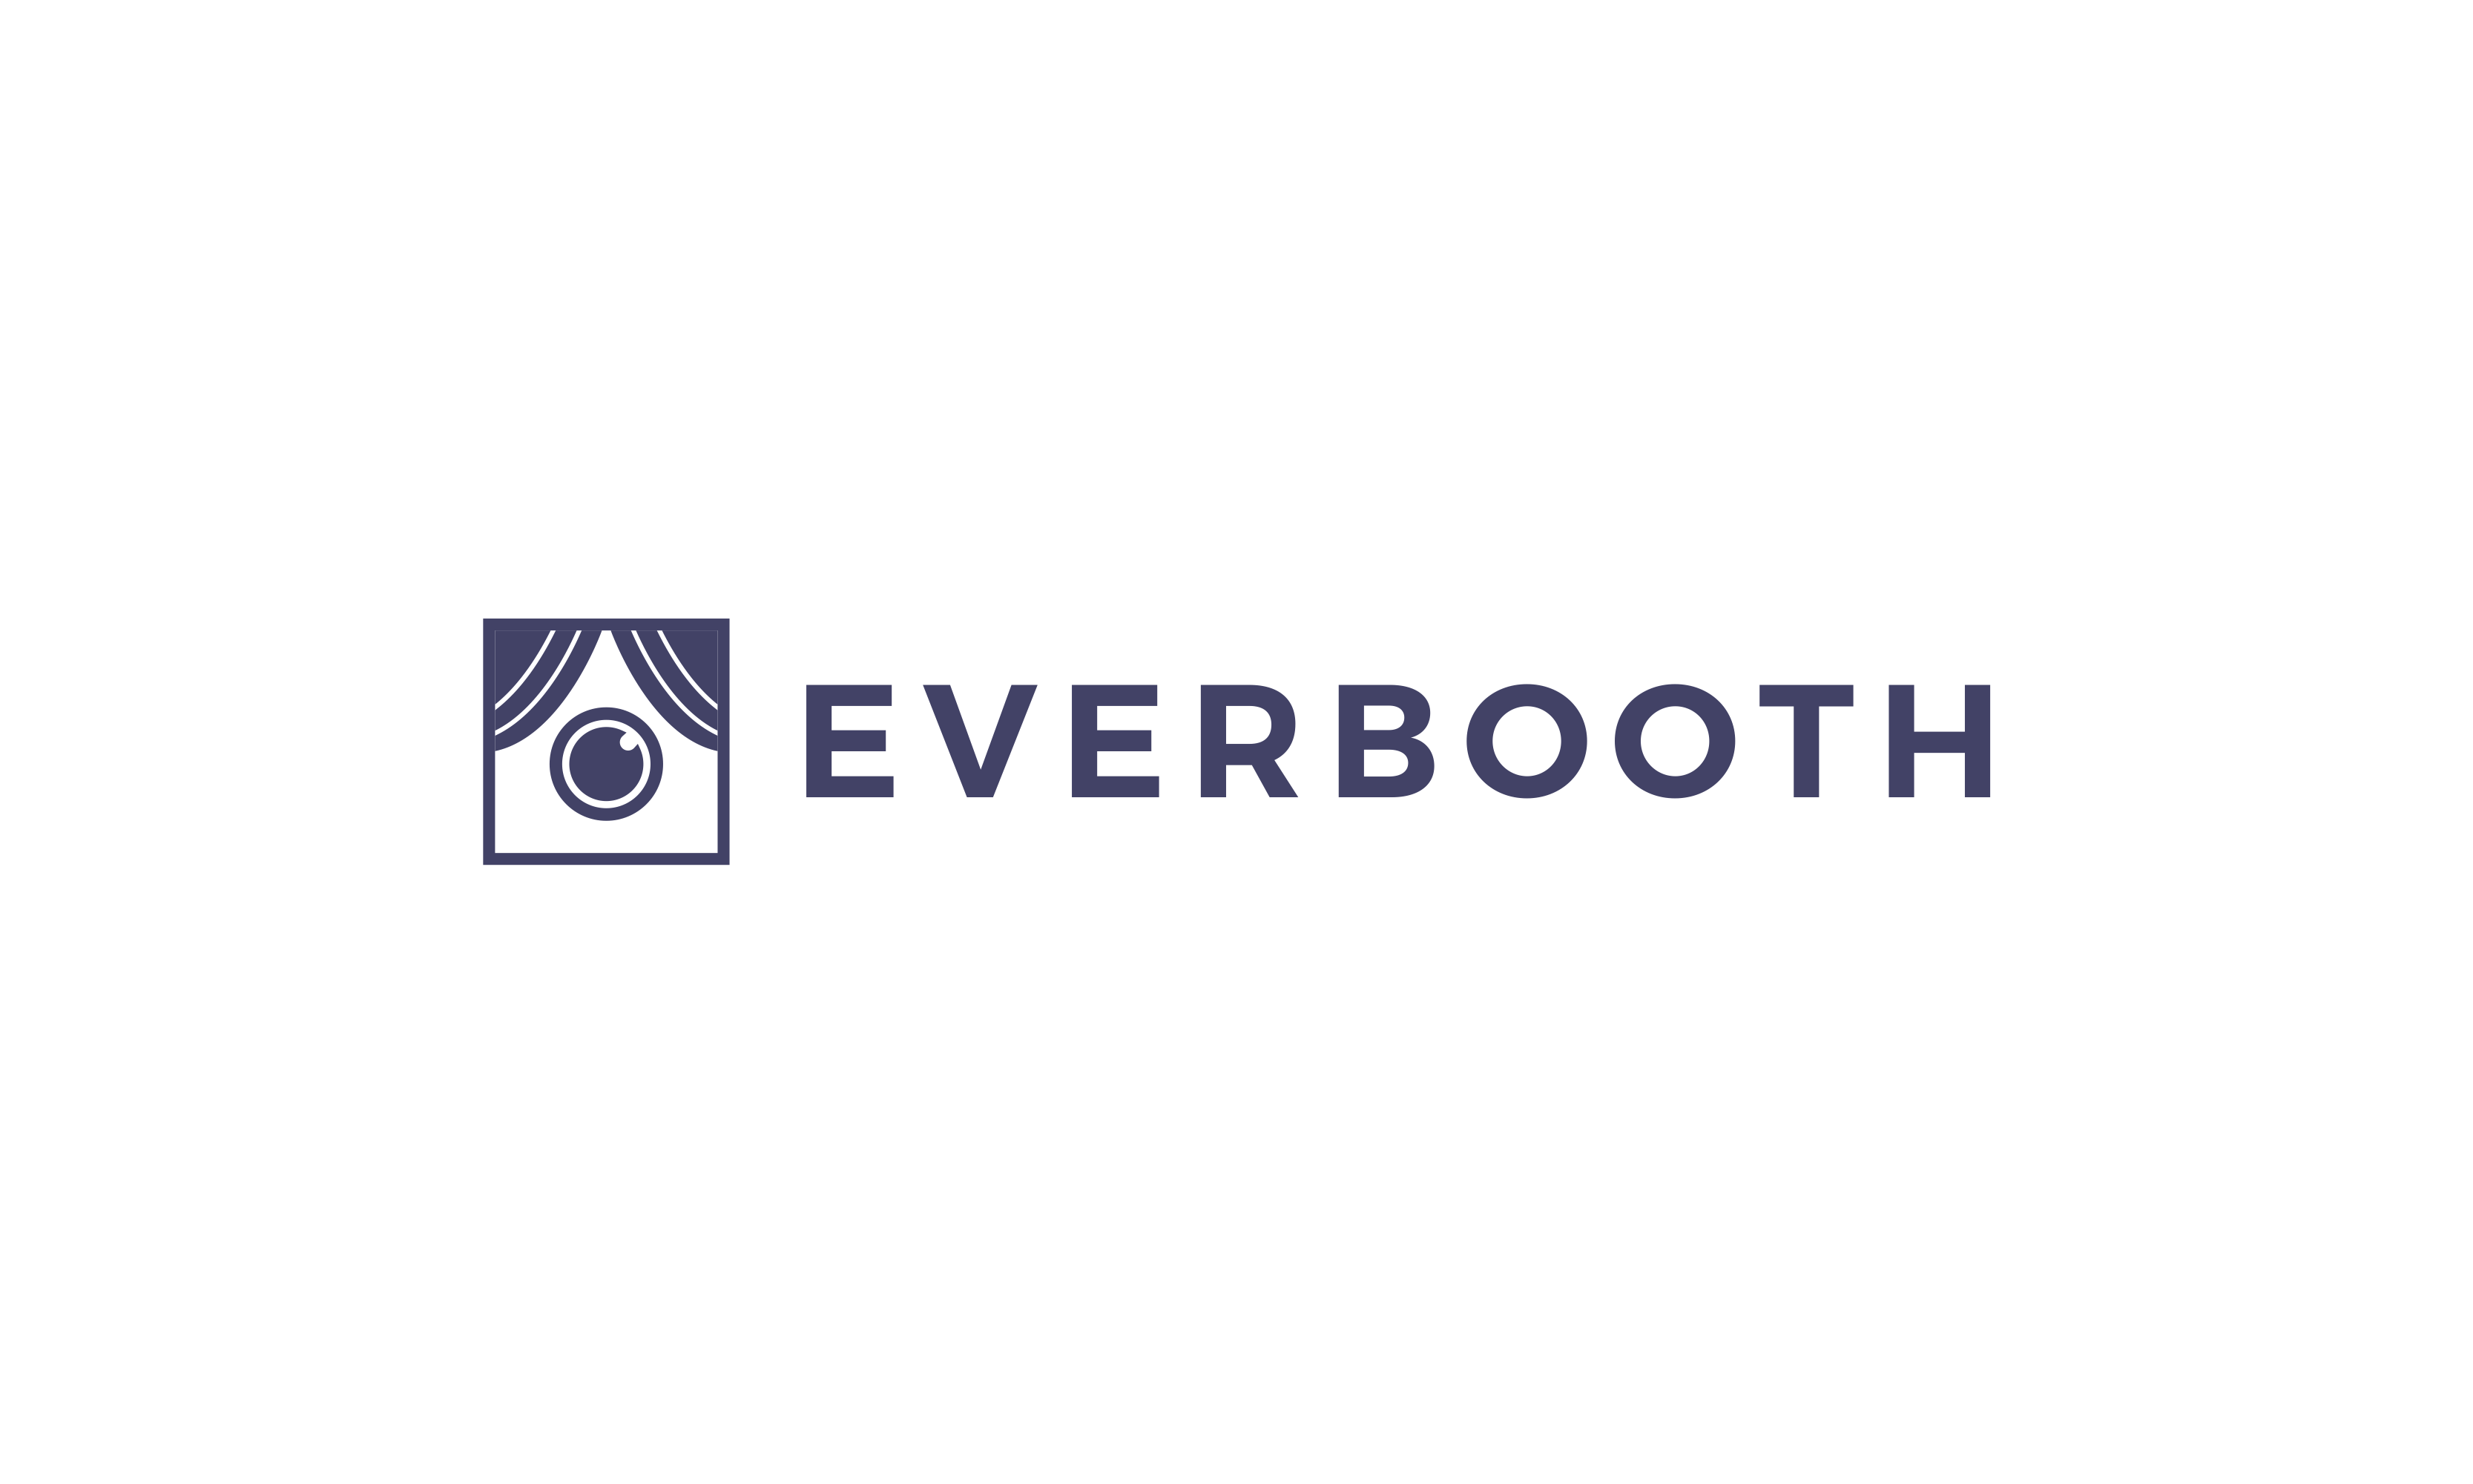 Everbooth